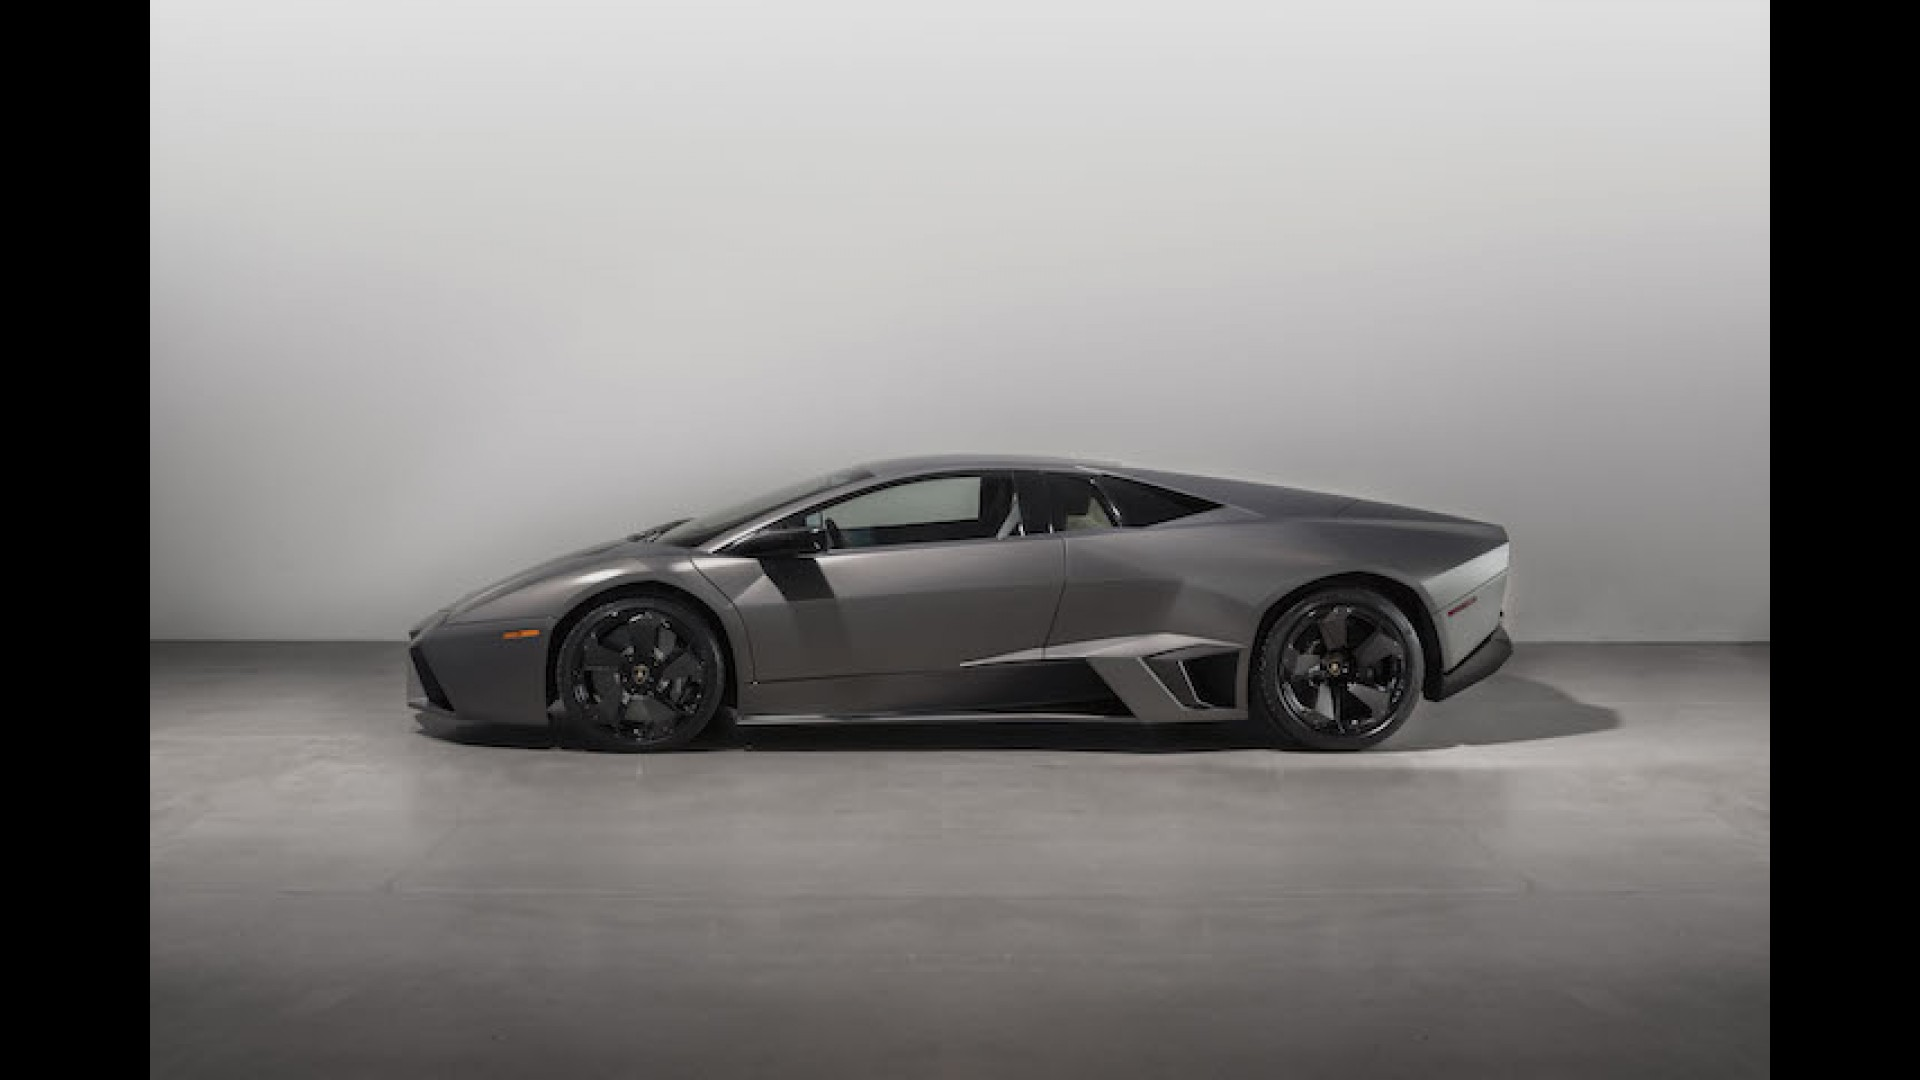 Rare Lamborghini Reventon Hitting the Auction Block at $1.2 Million